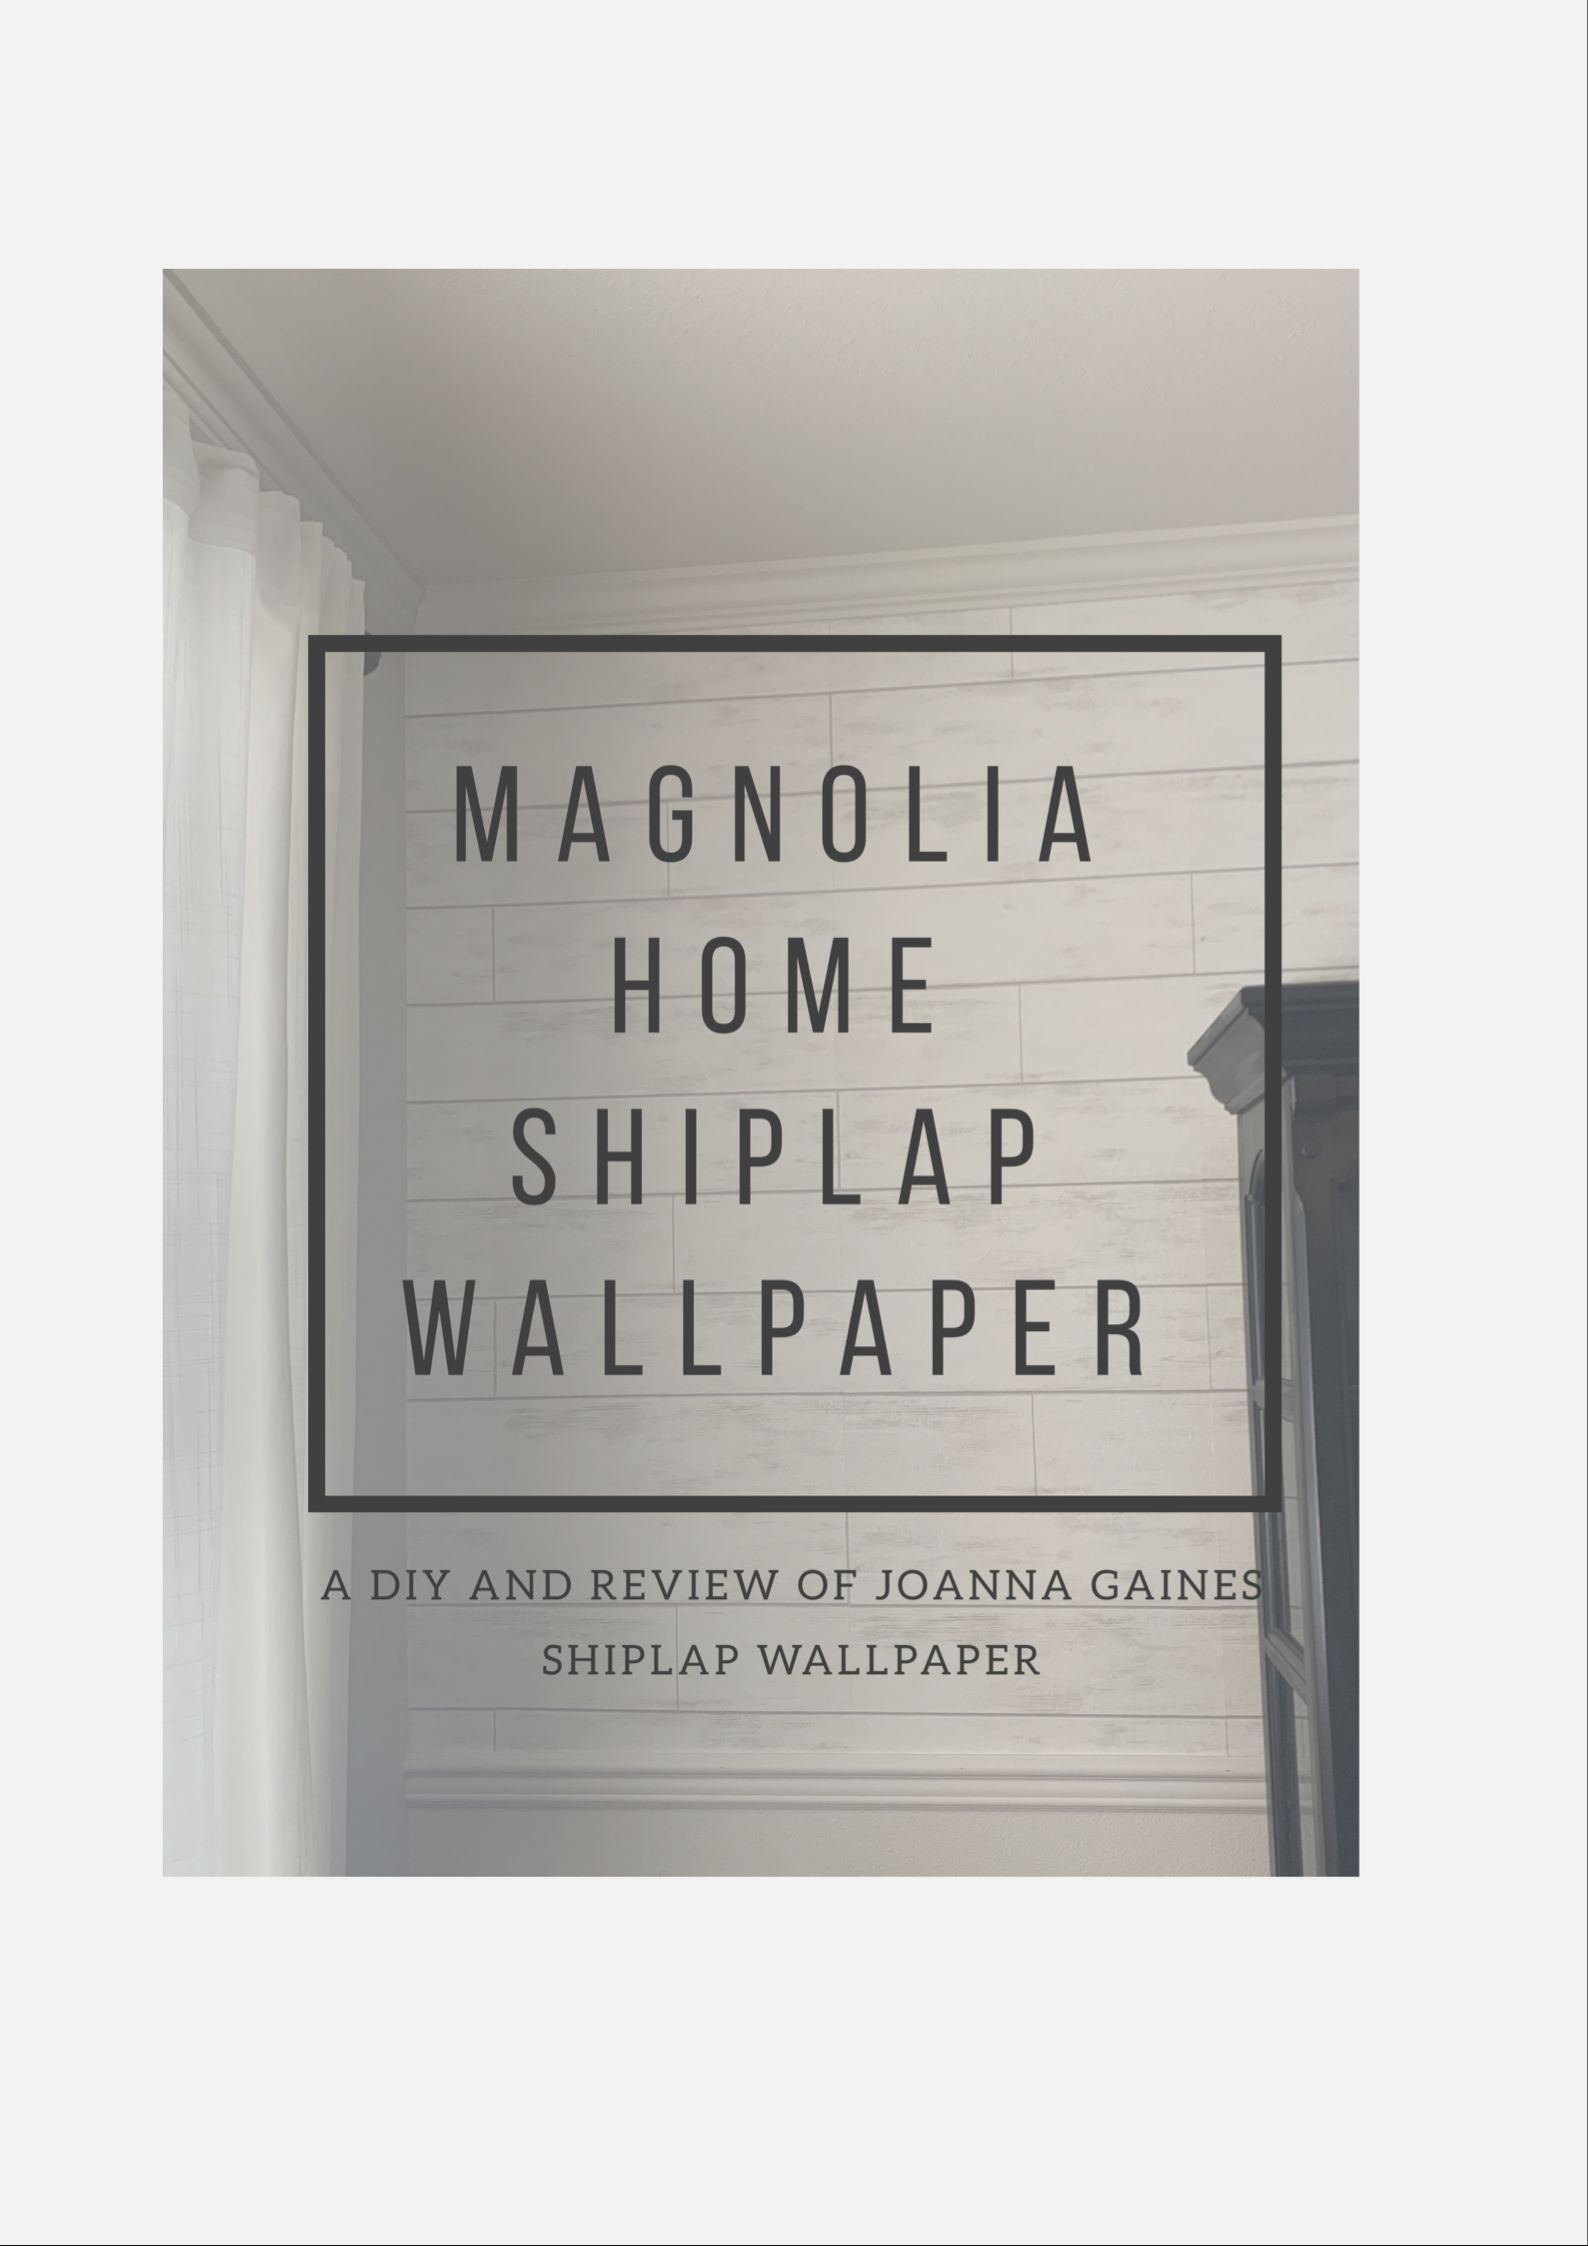 My DIY and Review of Magnolia Home Shiplap Wallpaper